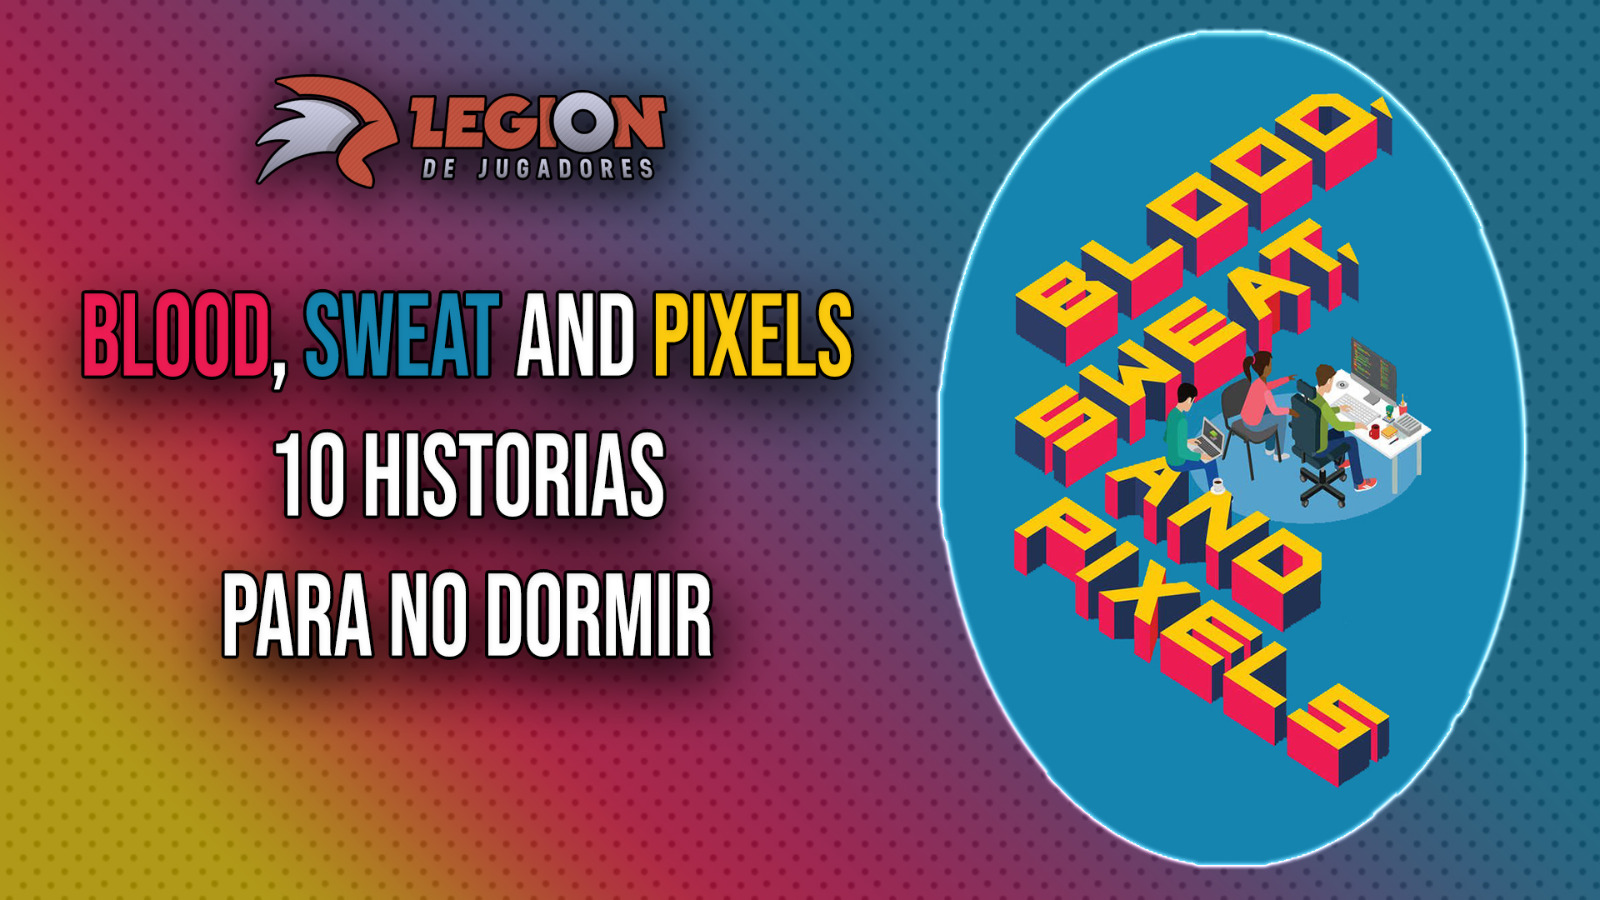 Reseña: Blood, sweat & pixels, 10 historias para no dormir